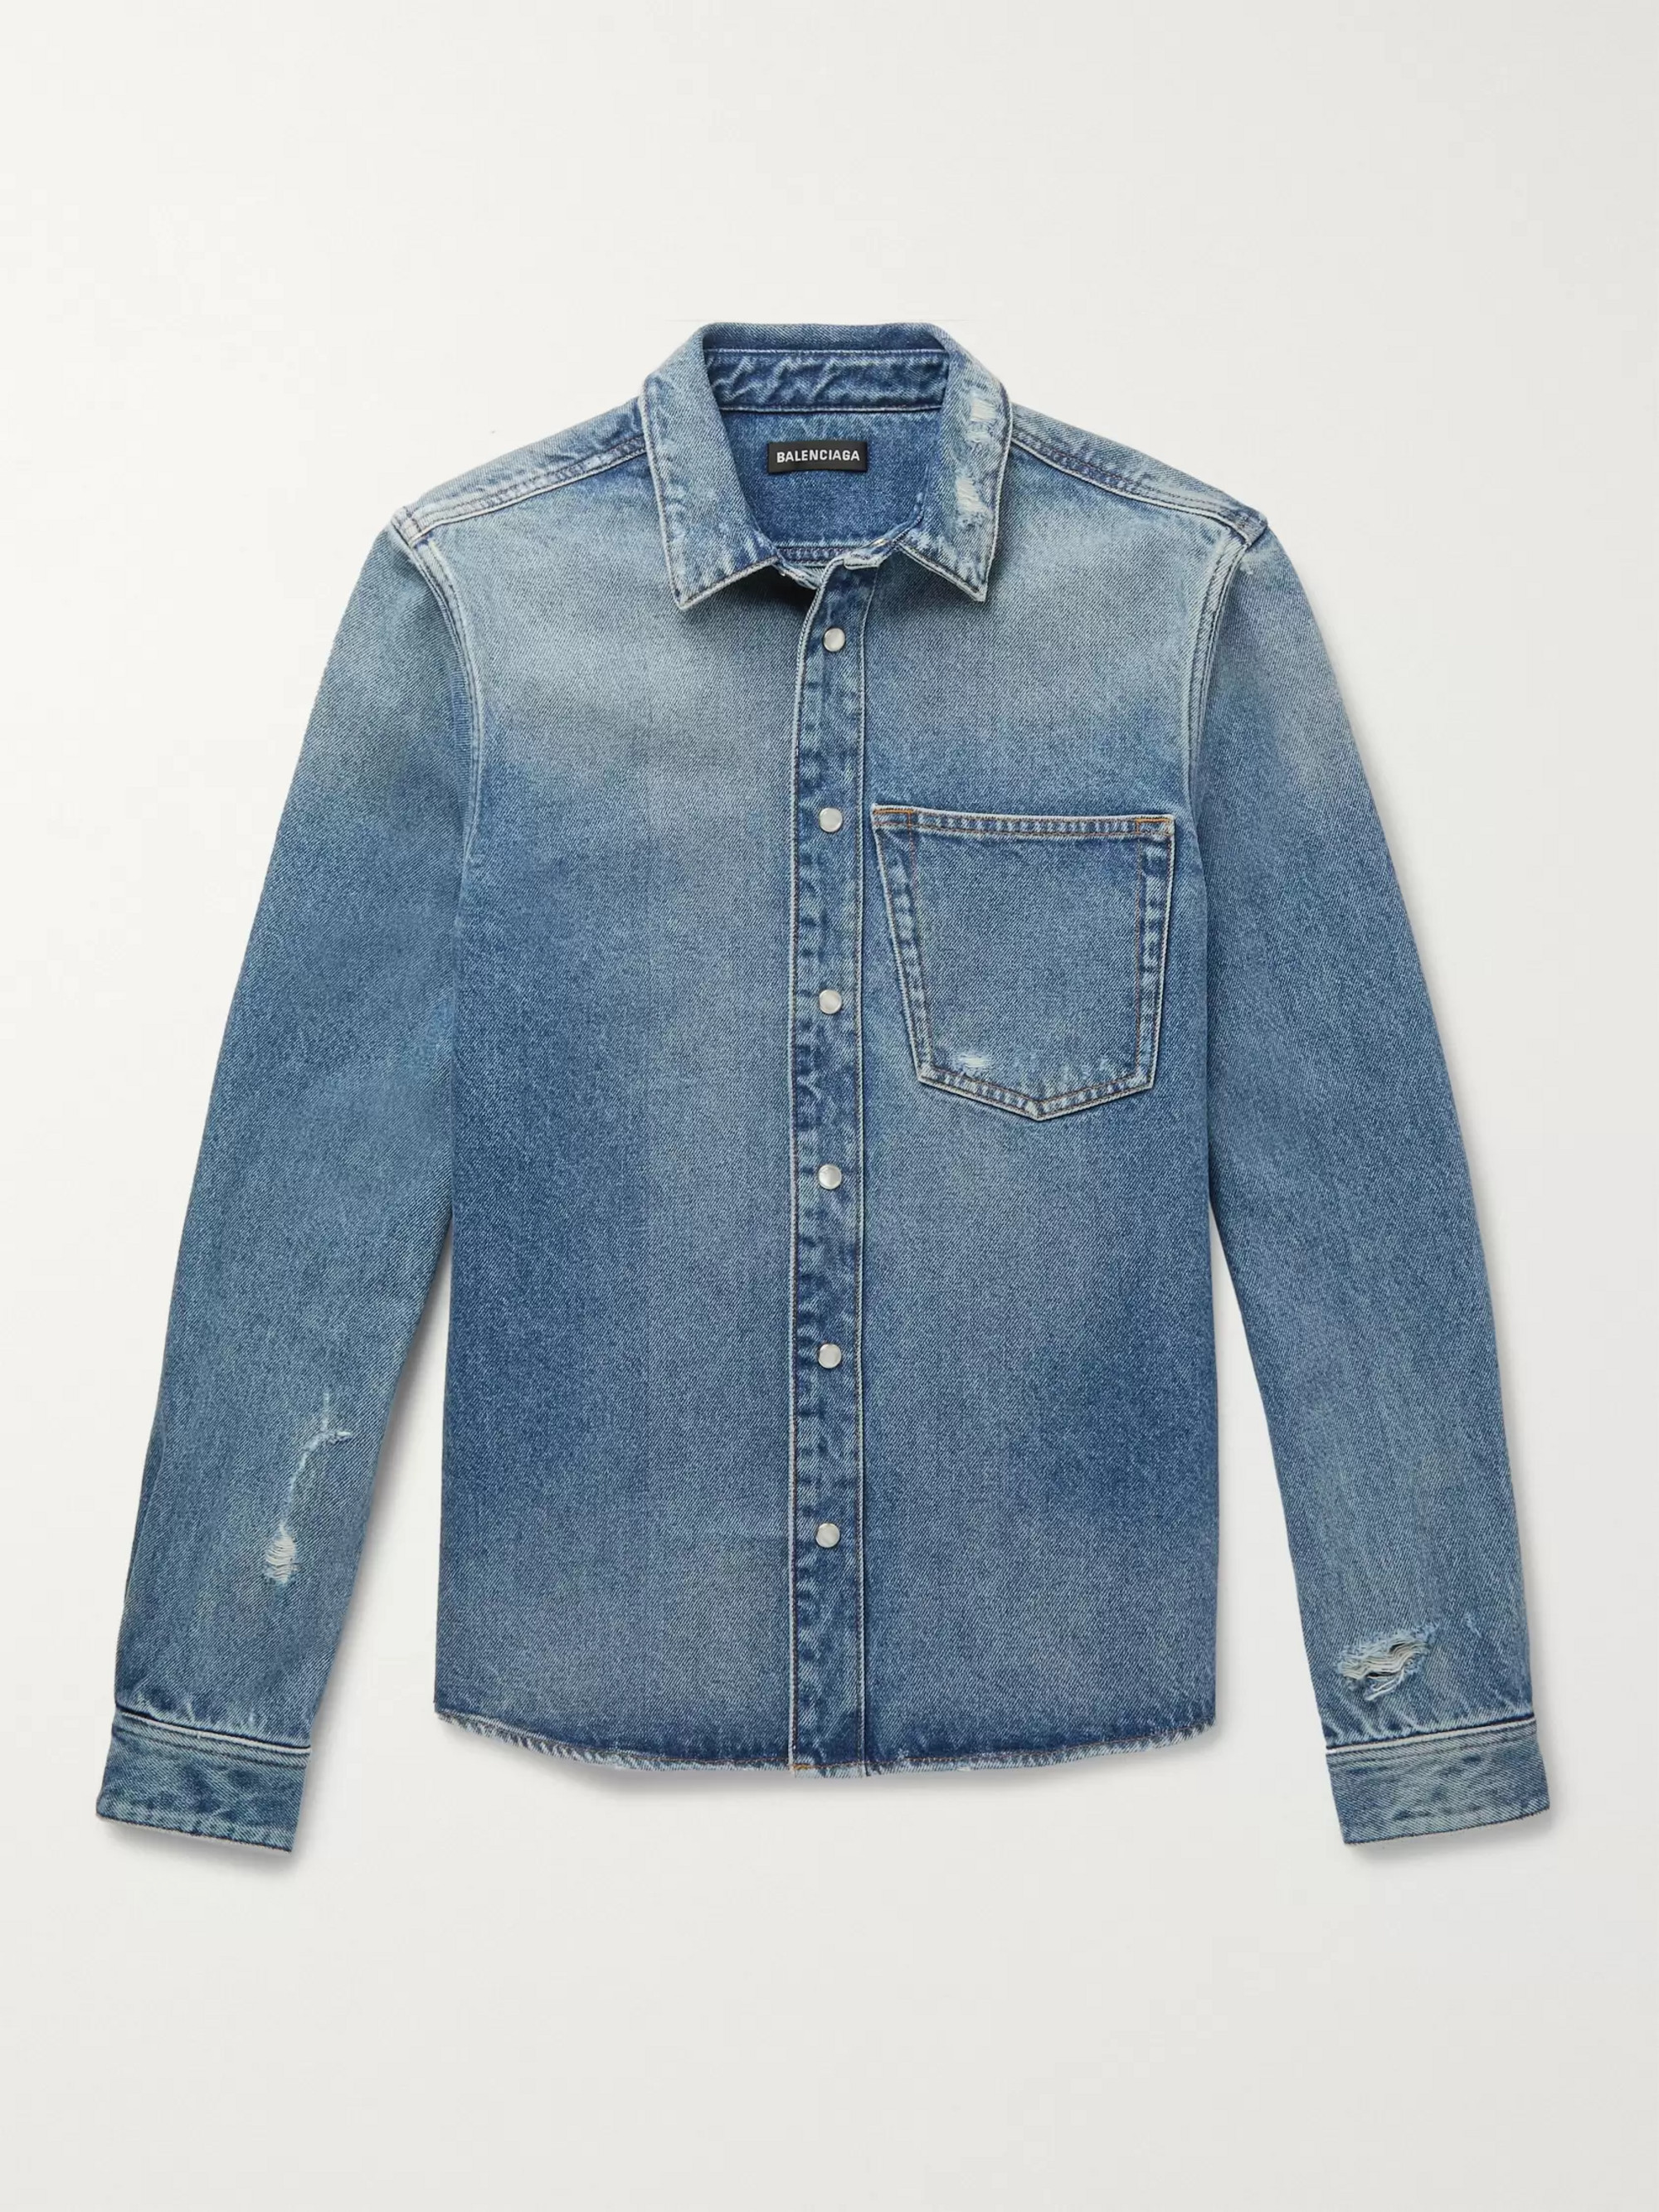 Balenciaga Embroidered Distressed Denim Shirt